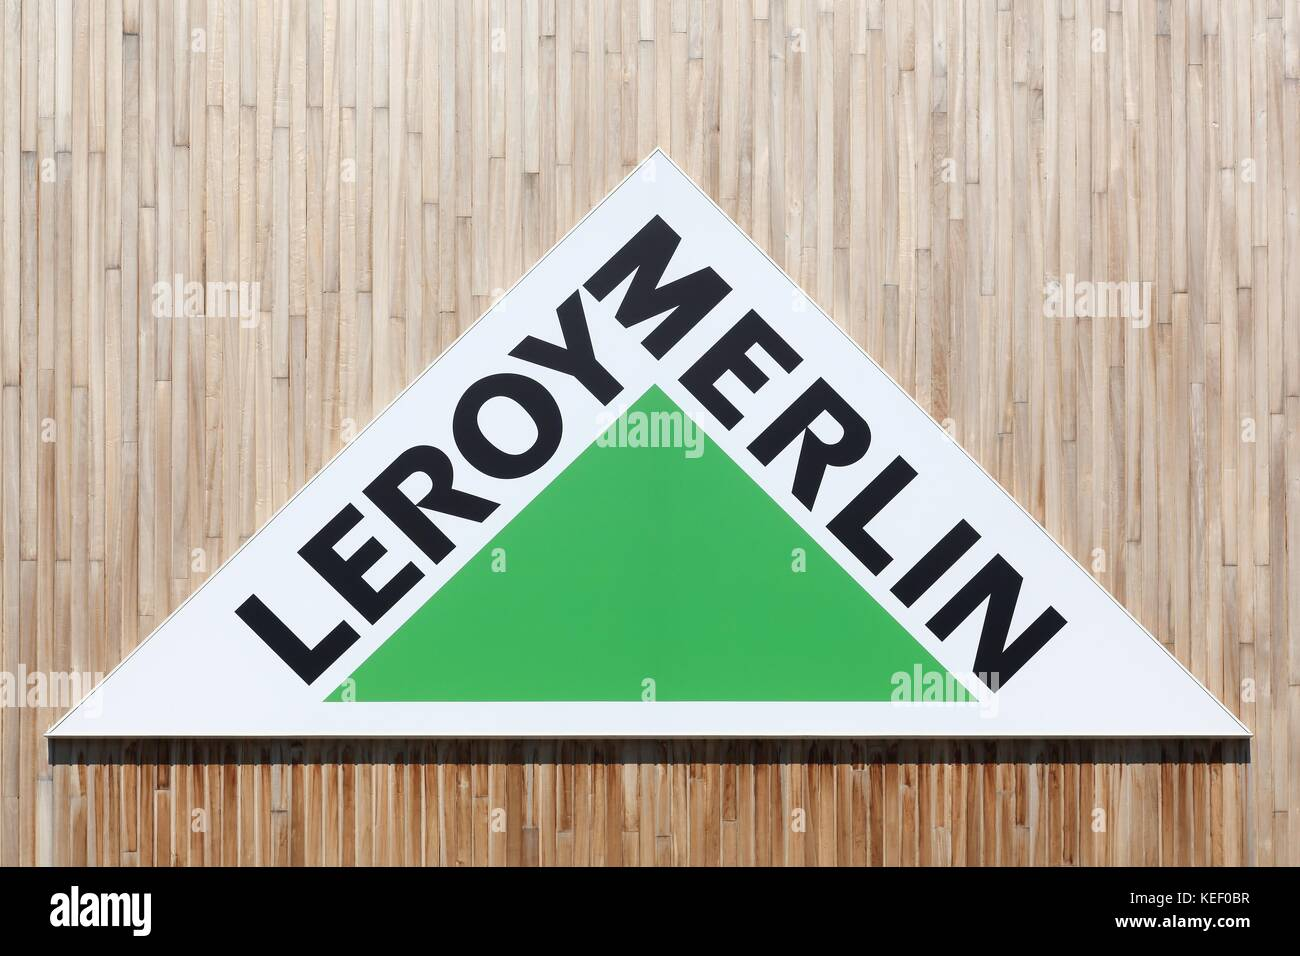 Leroy Merlin Grenoble Leroy Merlin Stock Photos And Leroy Merlin Stock Images Alamy